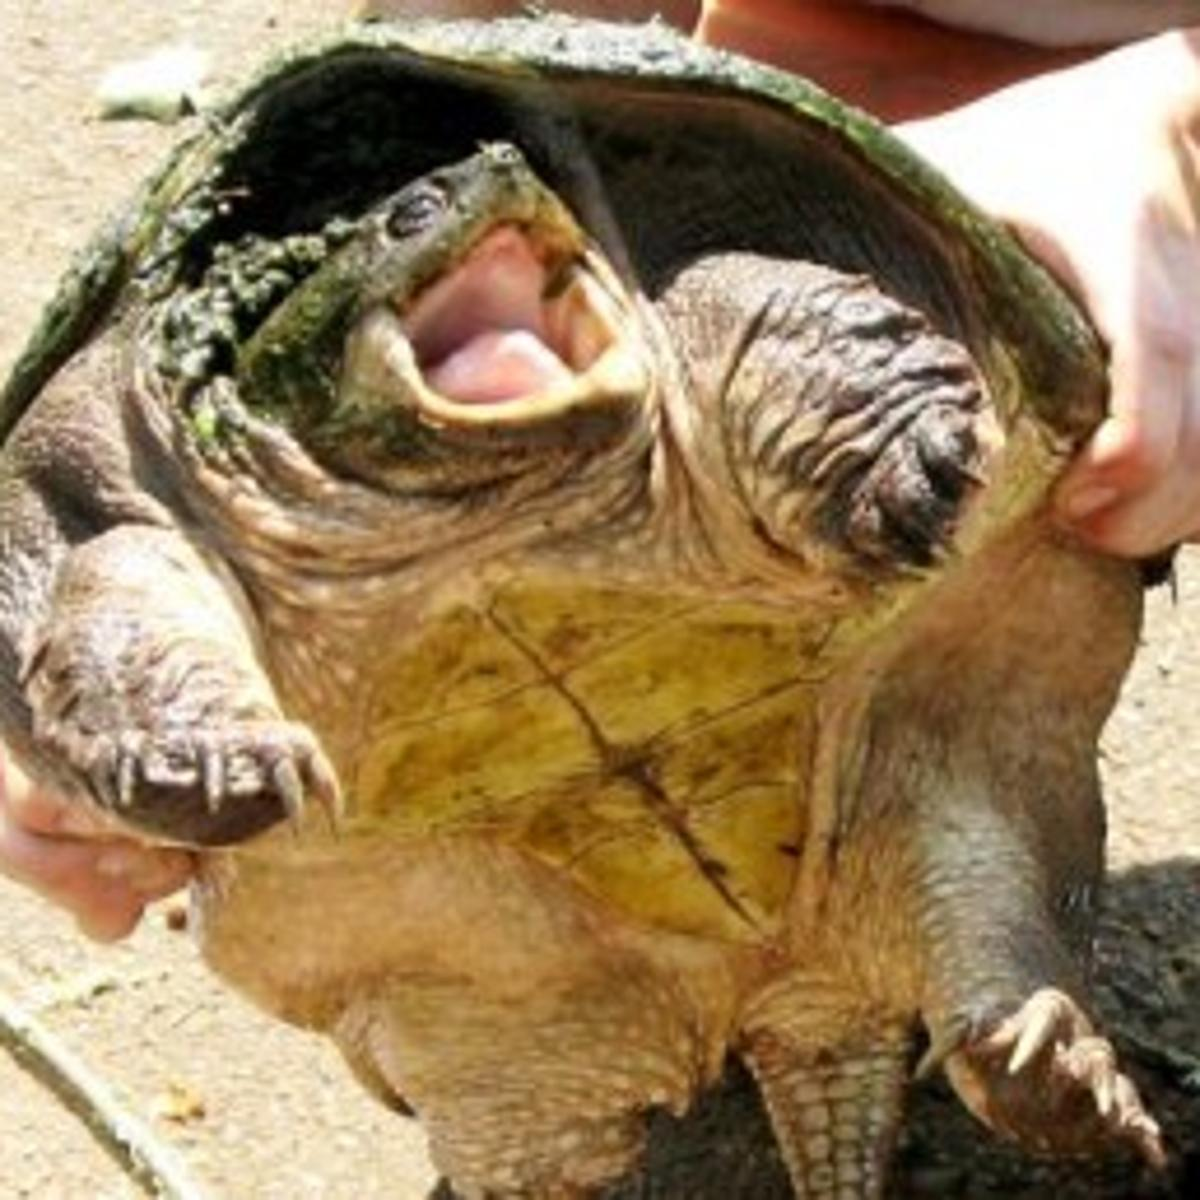 Giant snapping turtles cropping up in mid-valley | Local